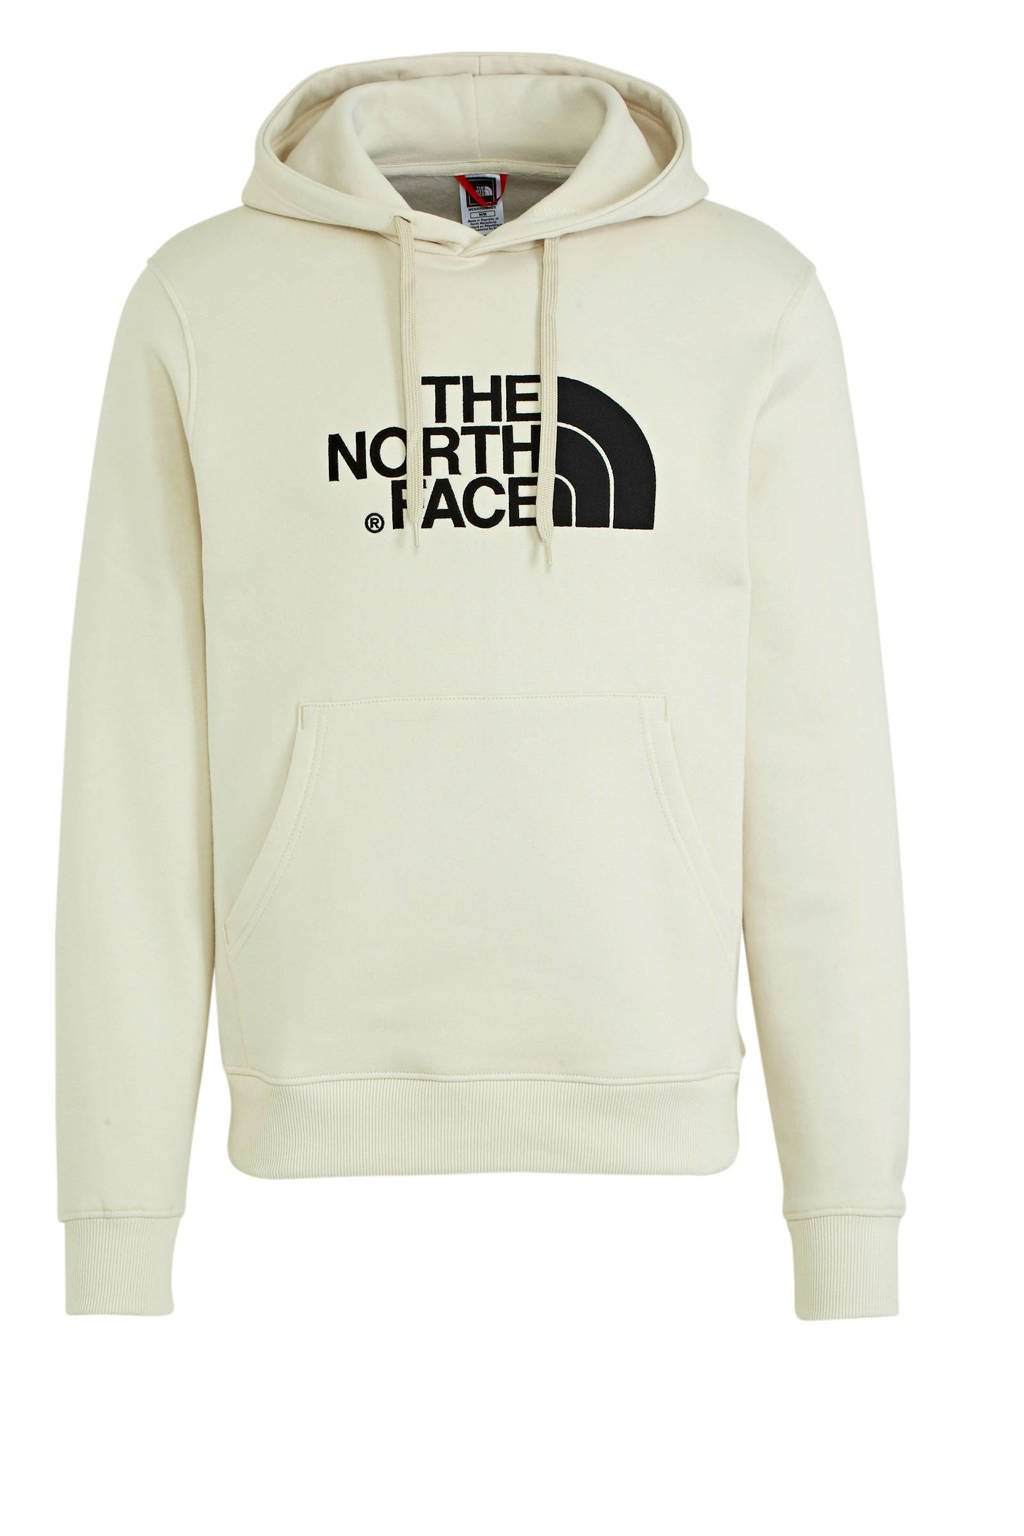 The North Face   hoodie ecru, Ecru